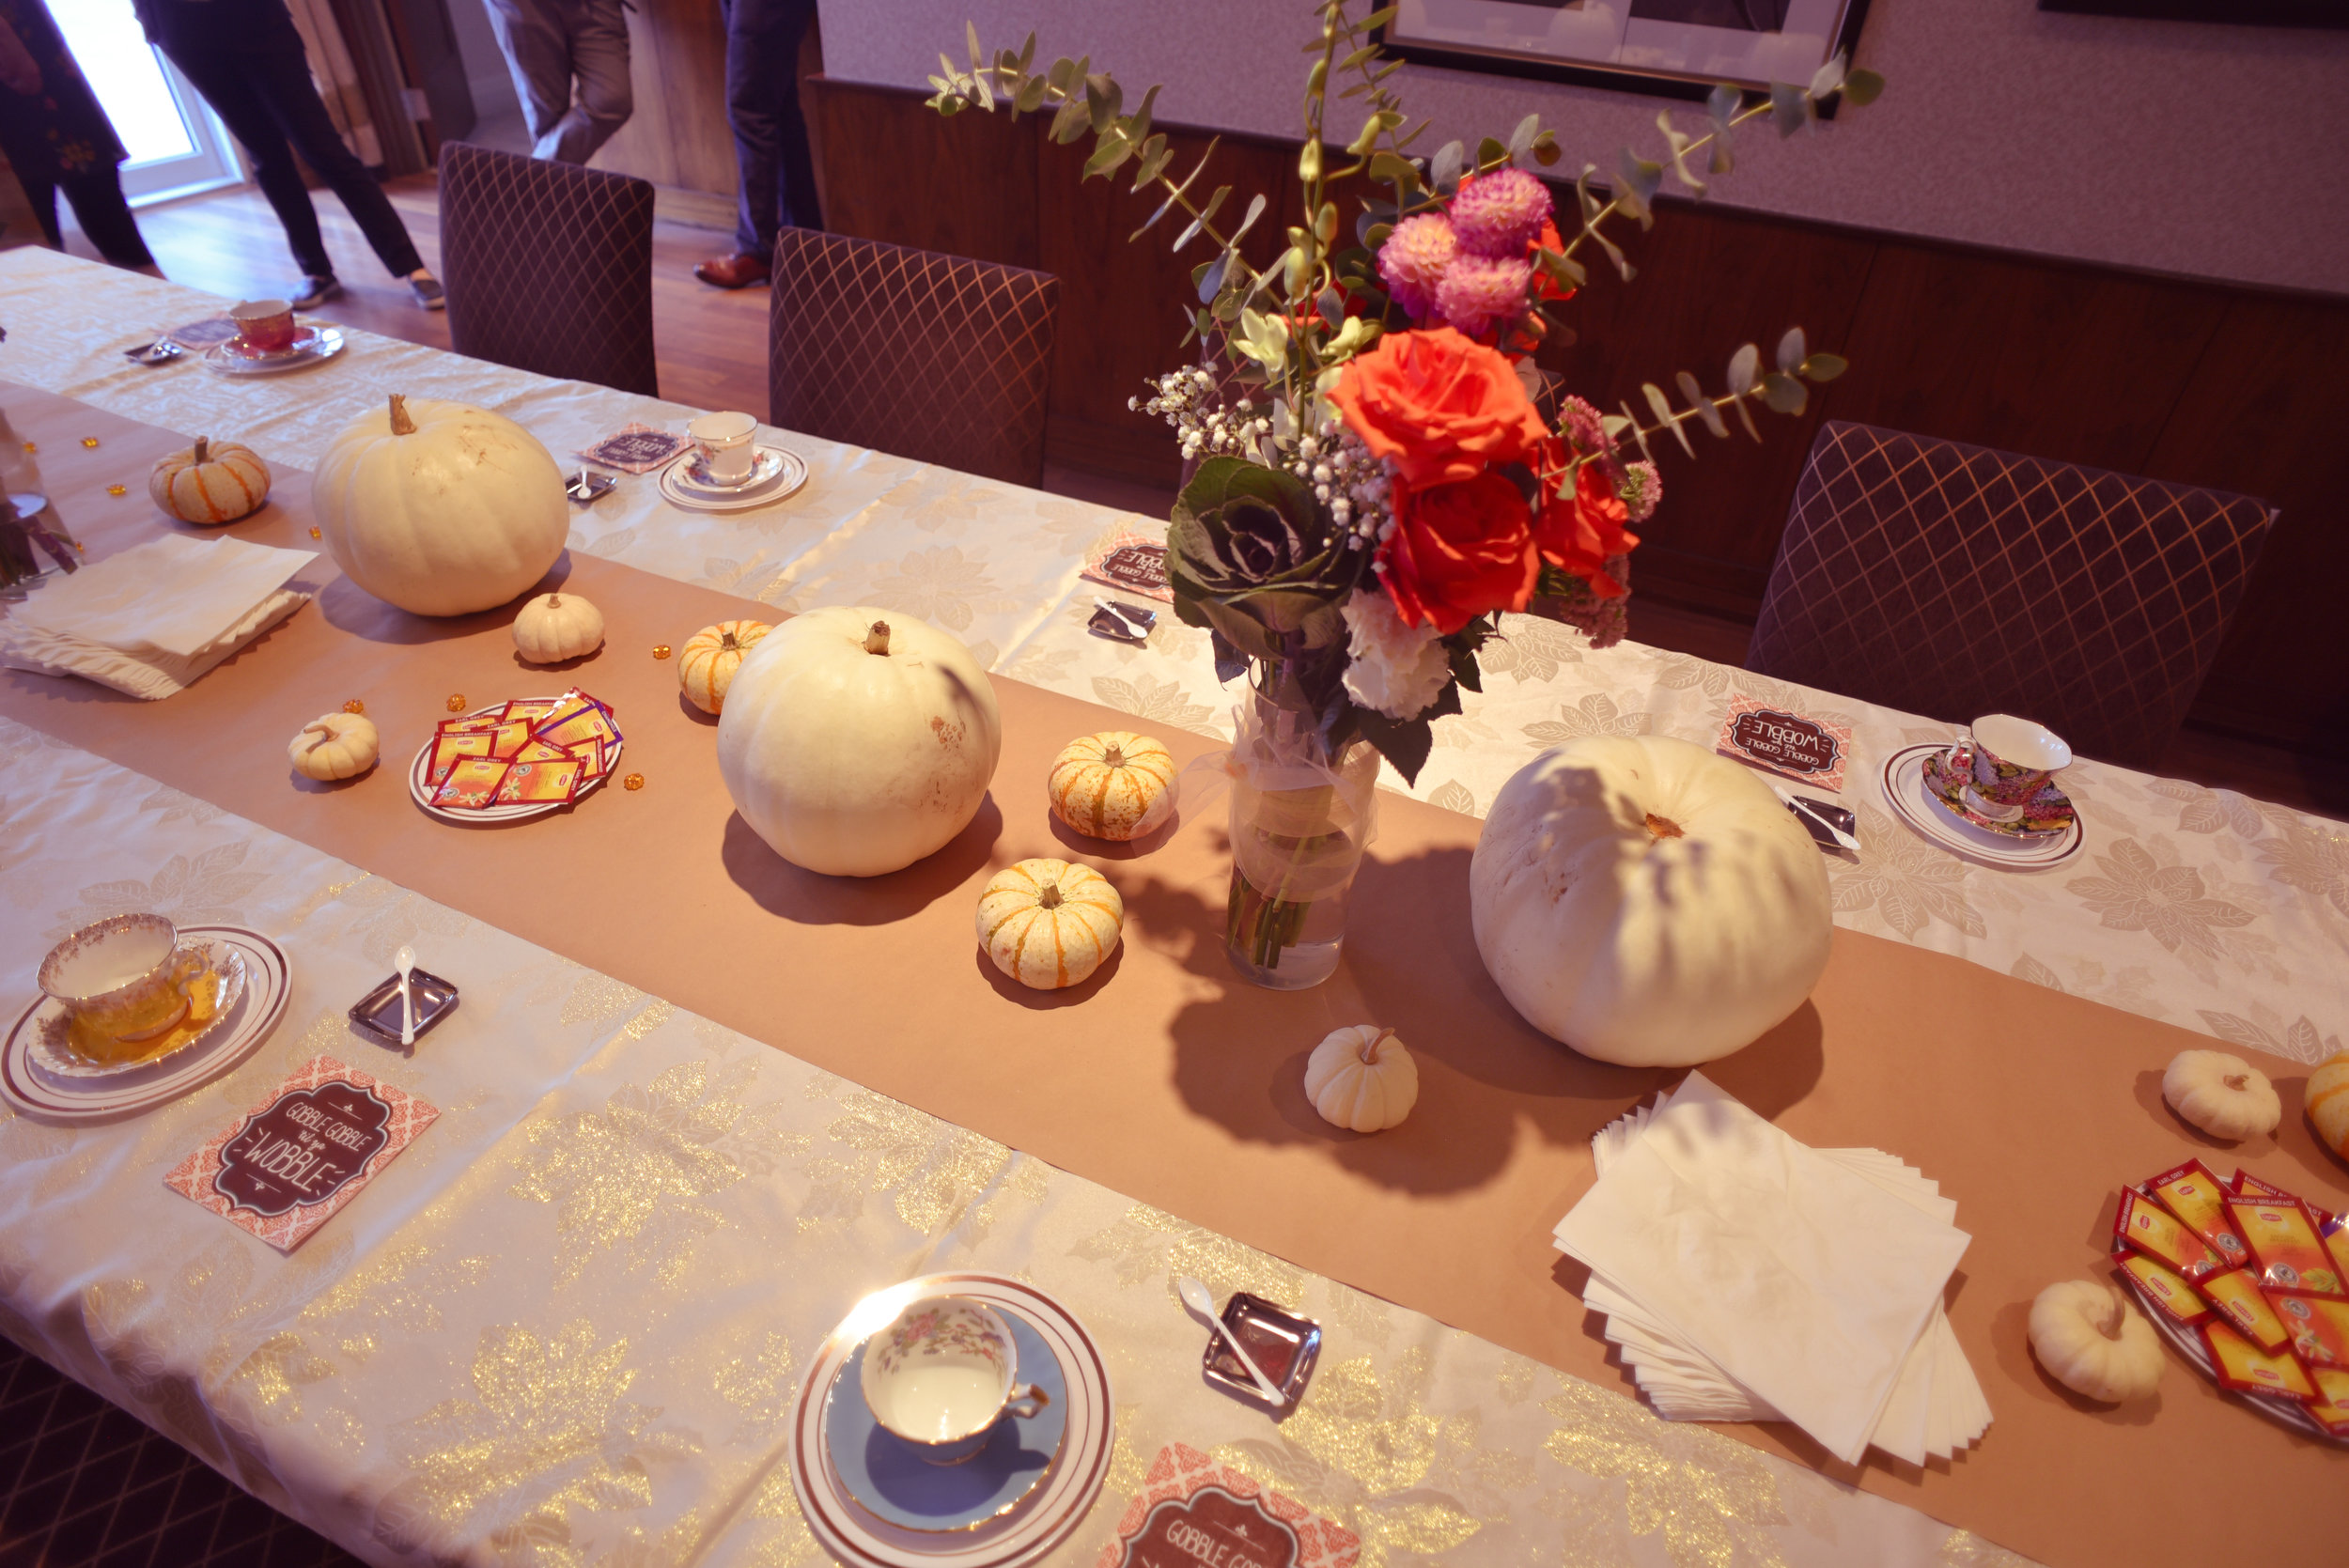 autumn-high-tea-tablescape-lily-muffins.jpg